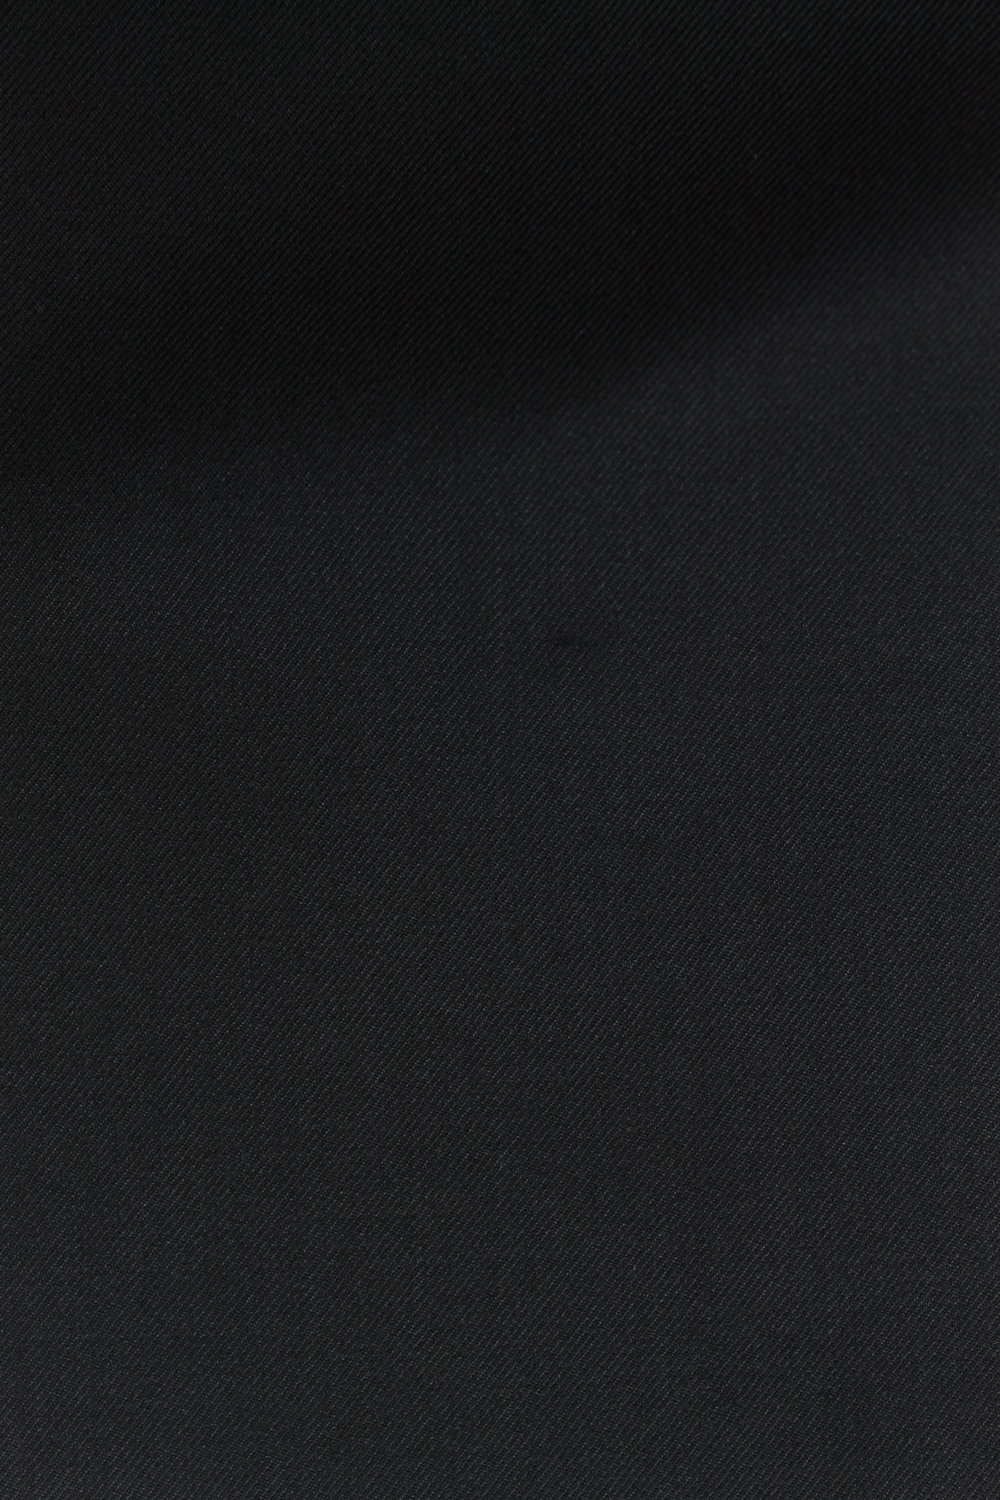 7698 Black Heavy Twill 305g.JPG